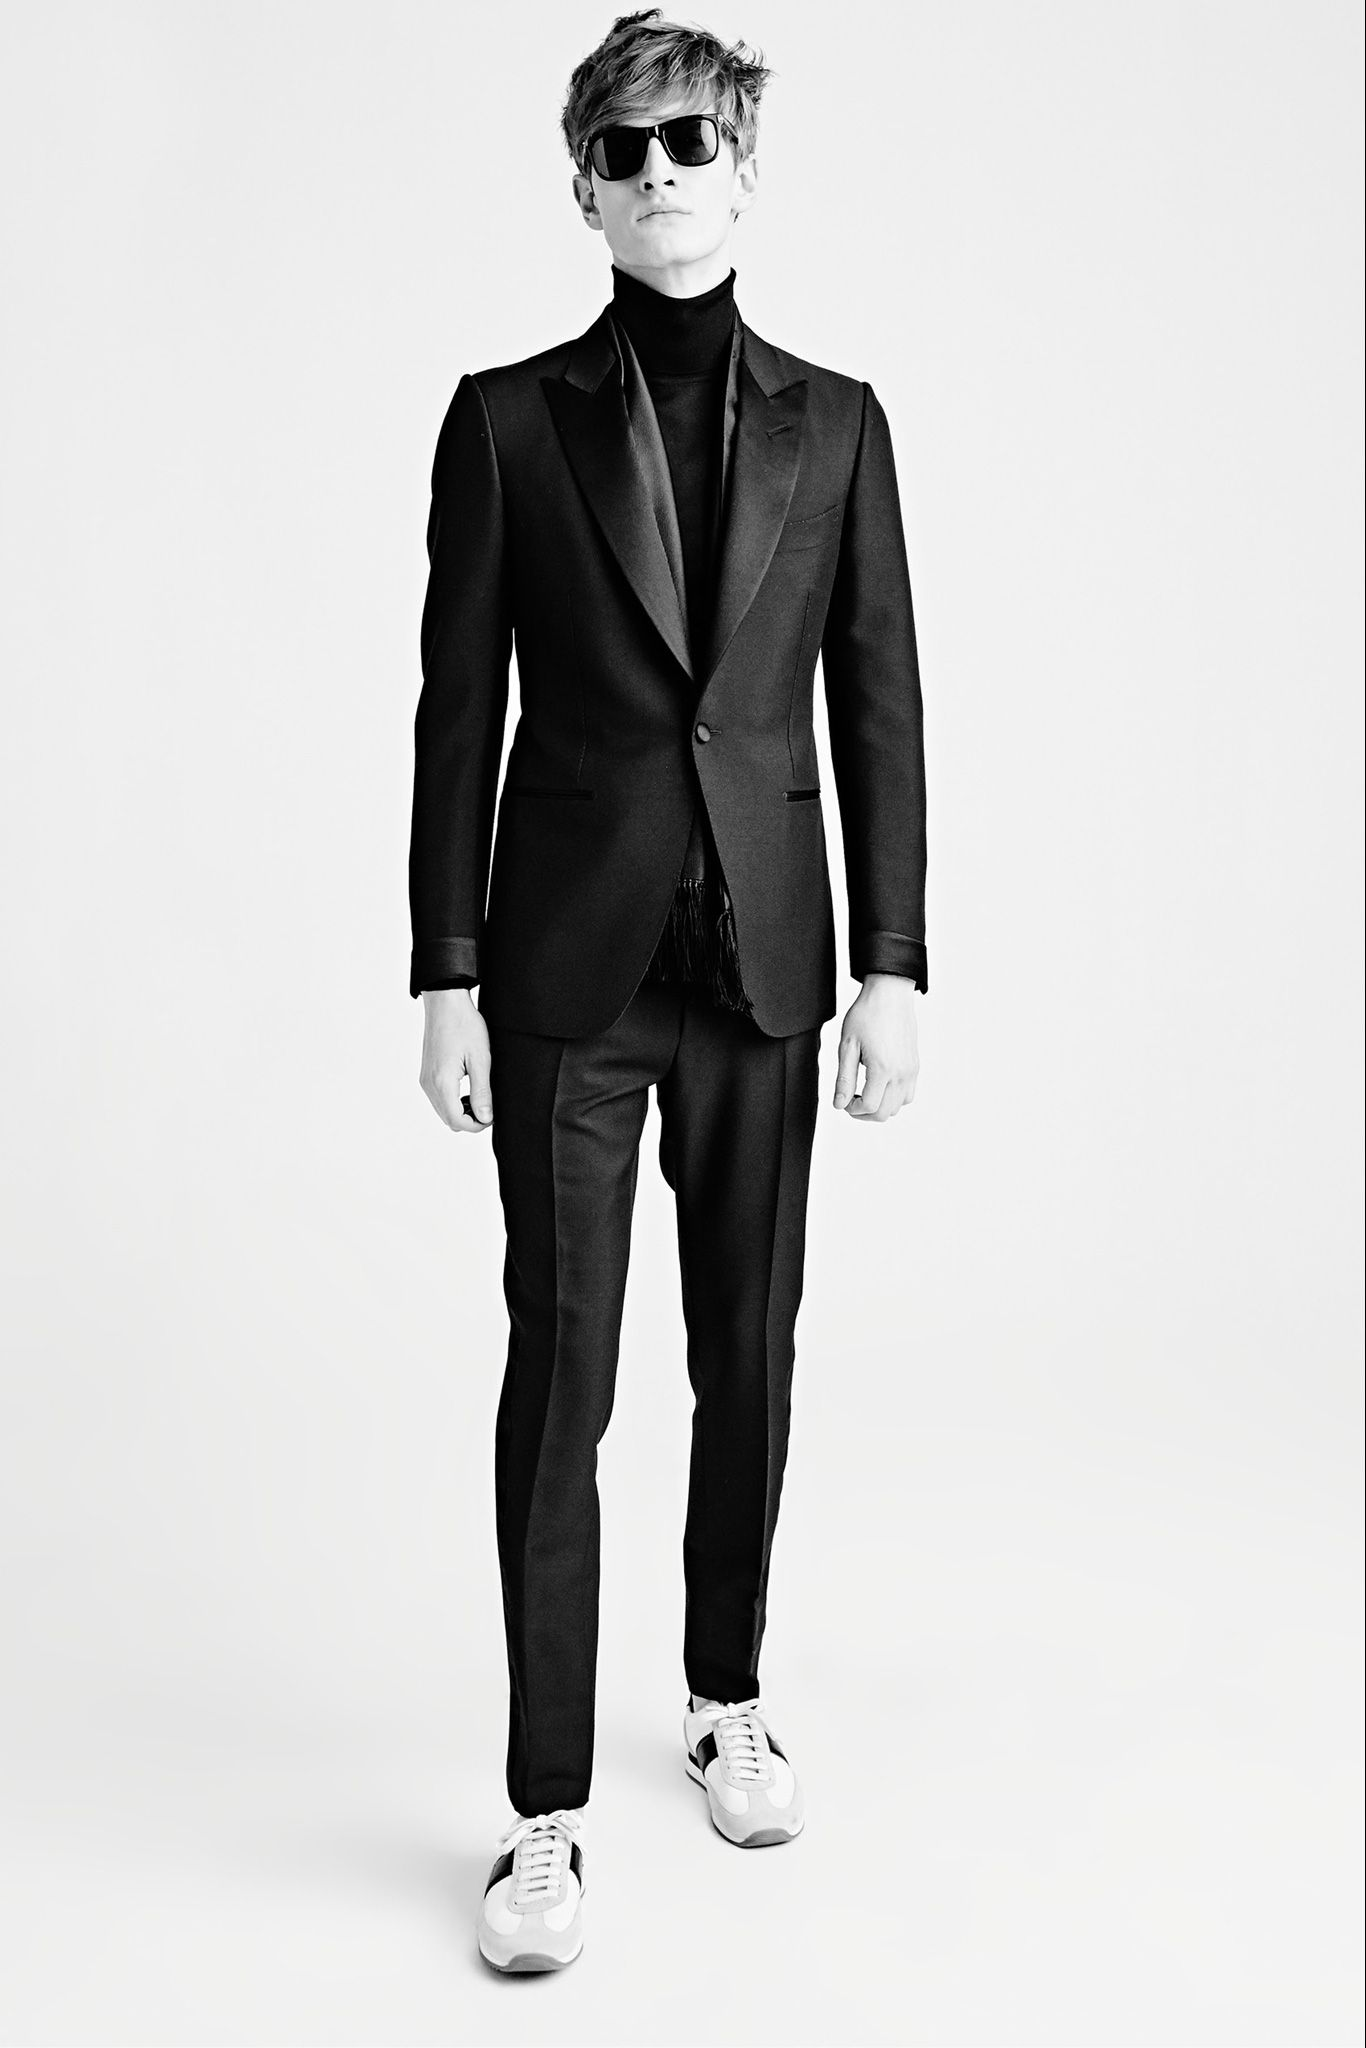 tom ford mens aw15 look 26 styl r m nner outfit. Black Bedroom Furniture Sets. Home Design Ideas